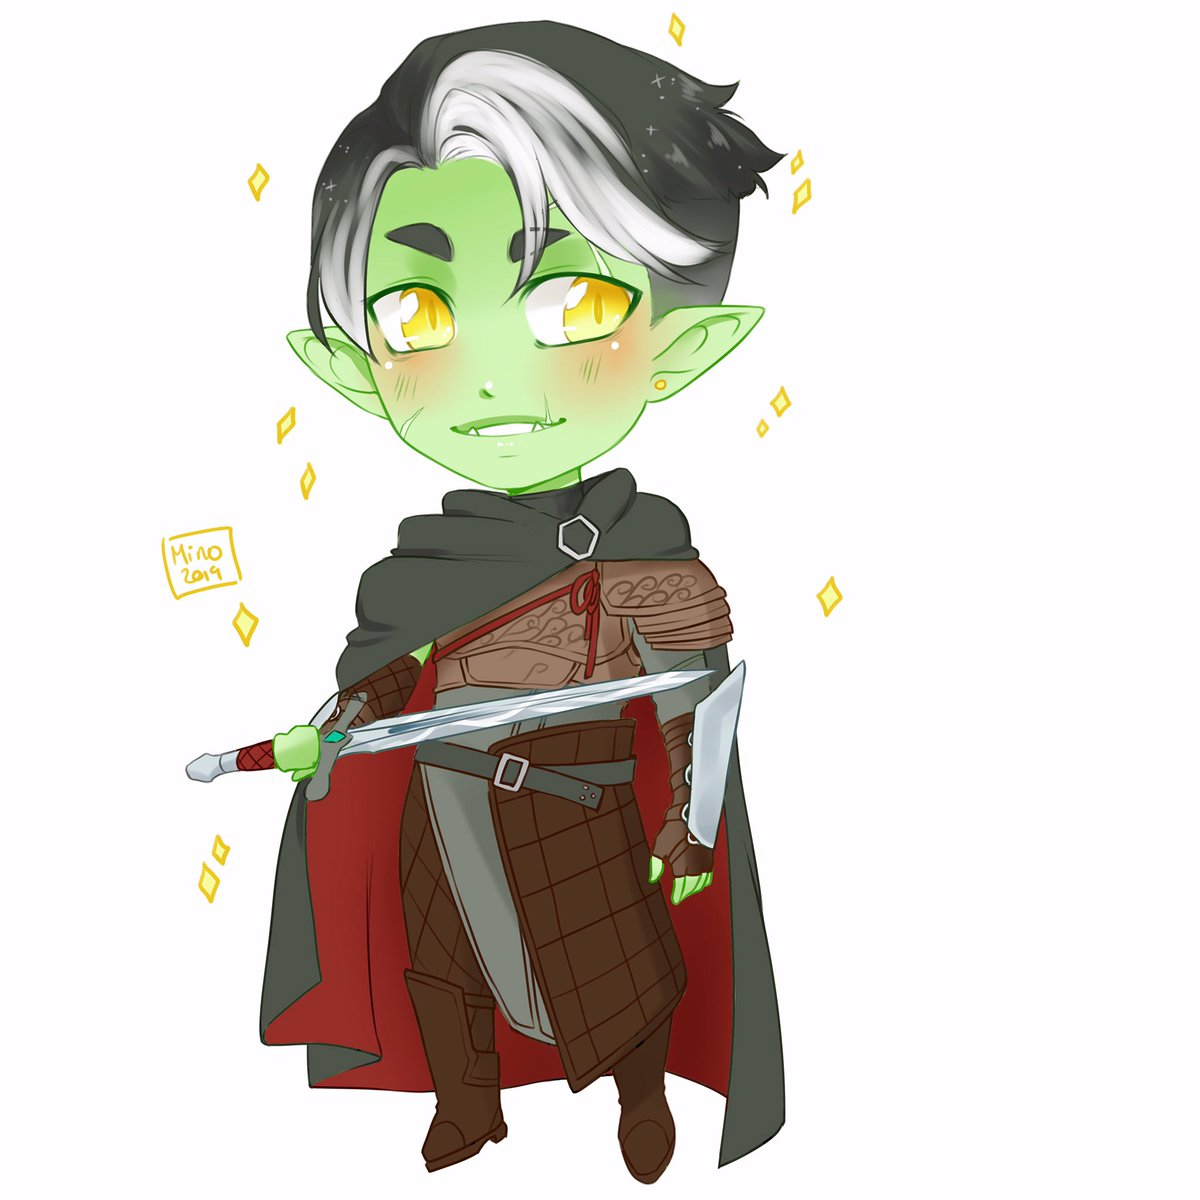 Didn't end up using this for CCE but here's a little lv10 Fjord for you all!  #critrole #criticalrole #critrolefanart #fjord #critters #critterartist #dnd #dungeonsanddragons #fanart #halforc  #mightynein #criticalrolefanart<br>http://pic.twitter.com/N6sObWeypC